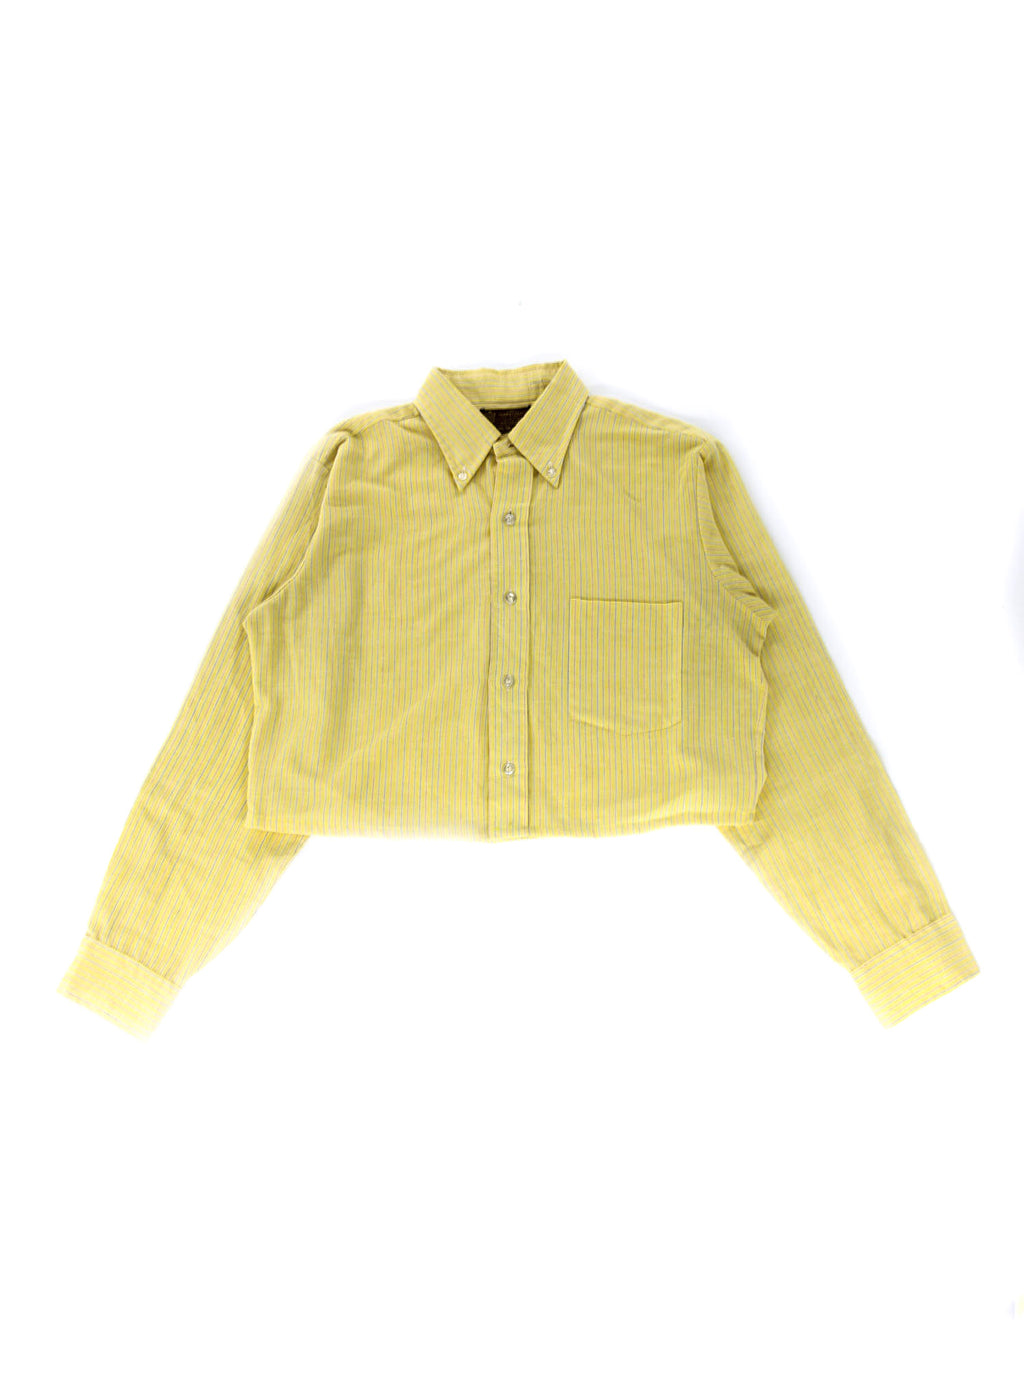 Vintage Yellow and Black Striped Cropped Shirt